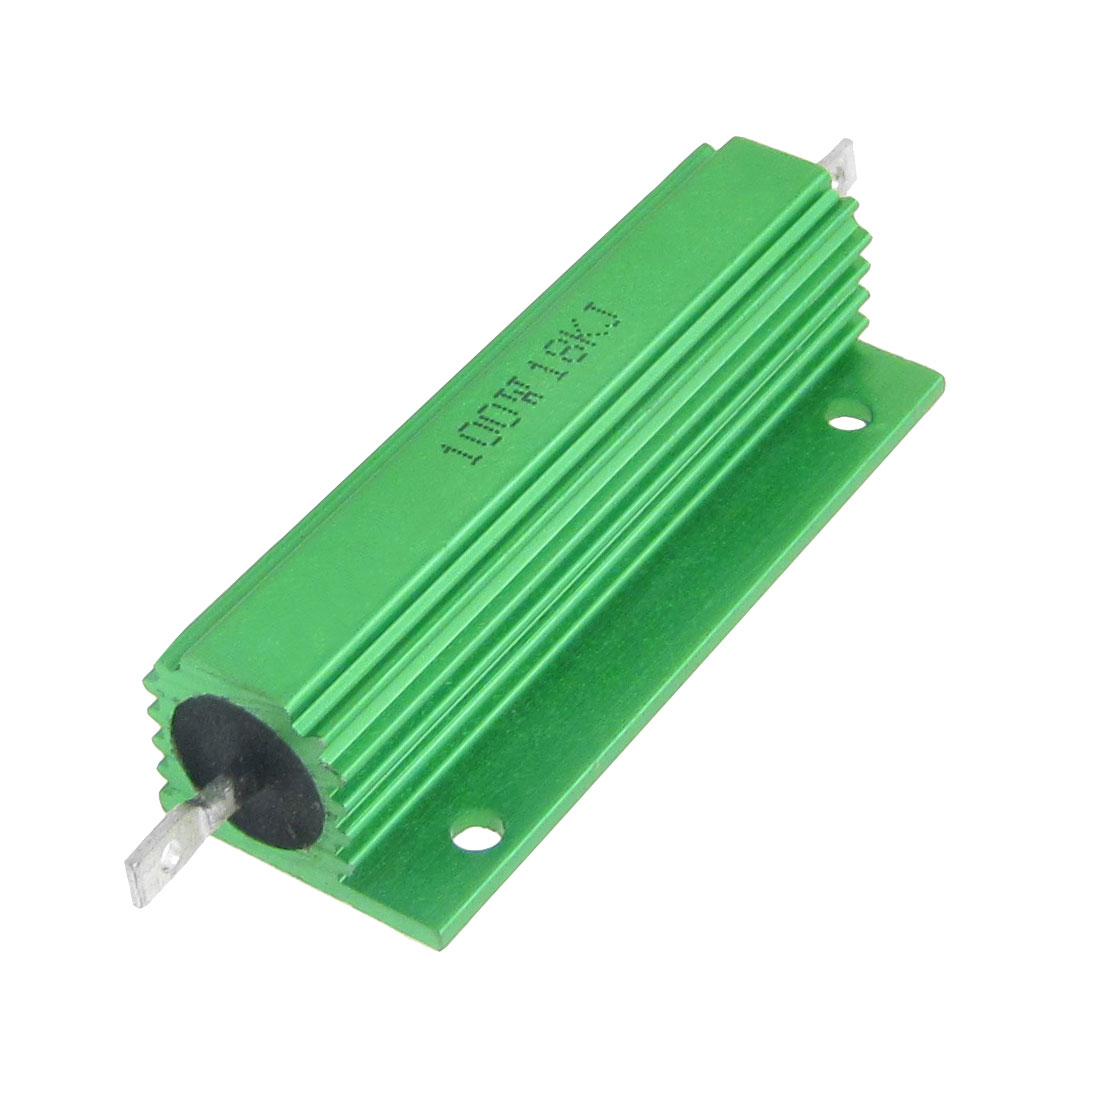 100W 18K Ohm Green Aluminium Clad Chassis Mounted Housed Resistor